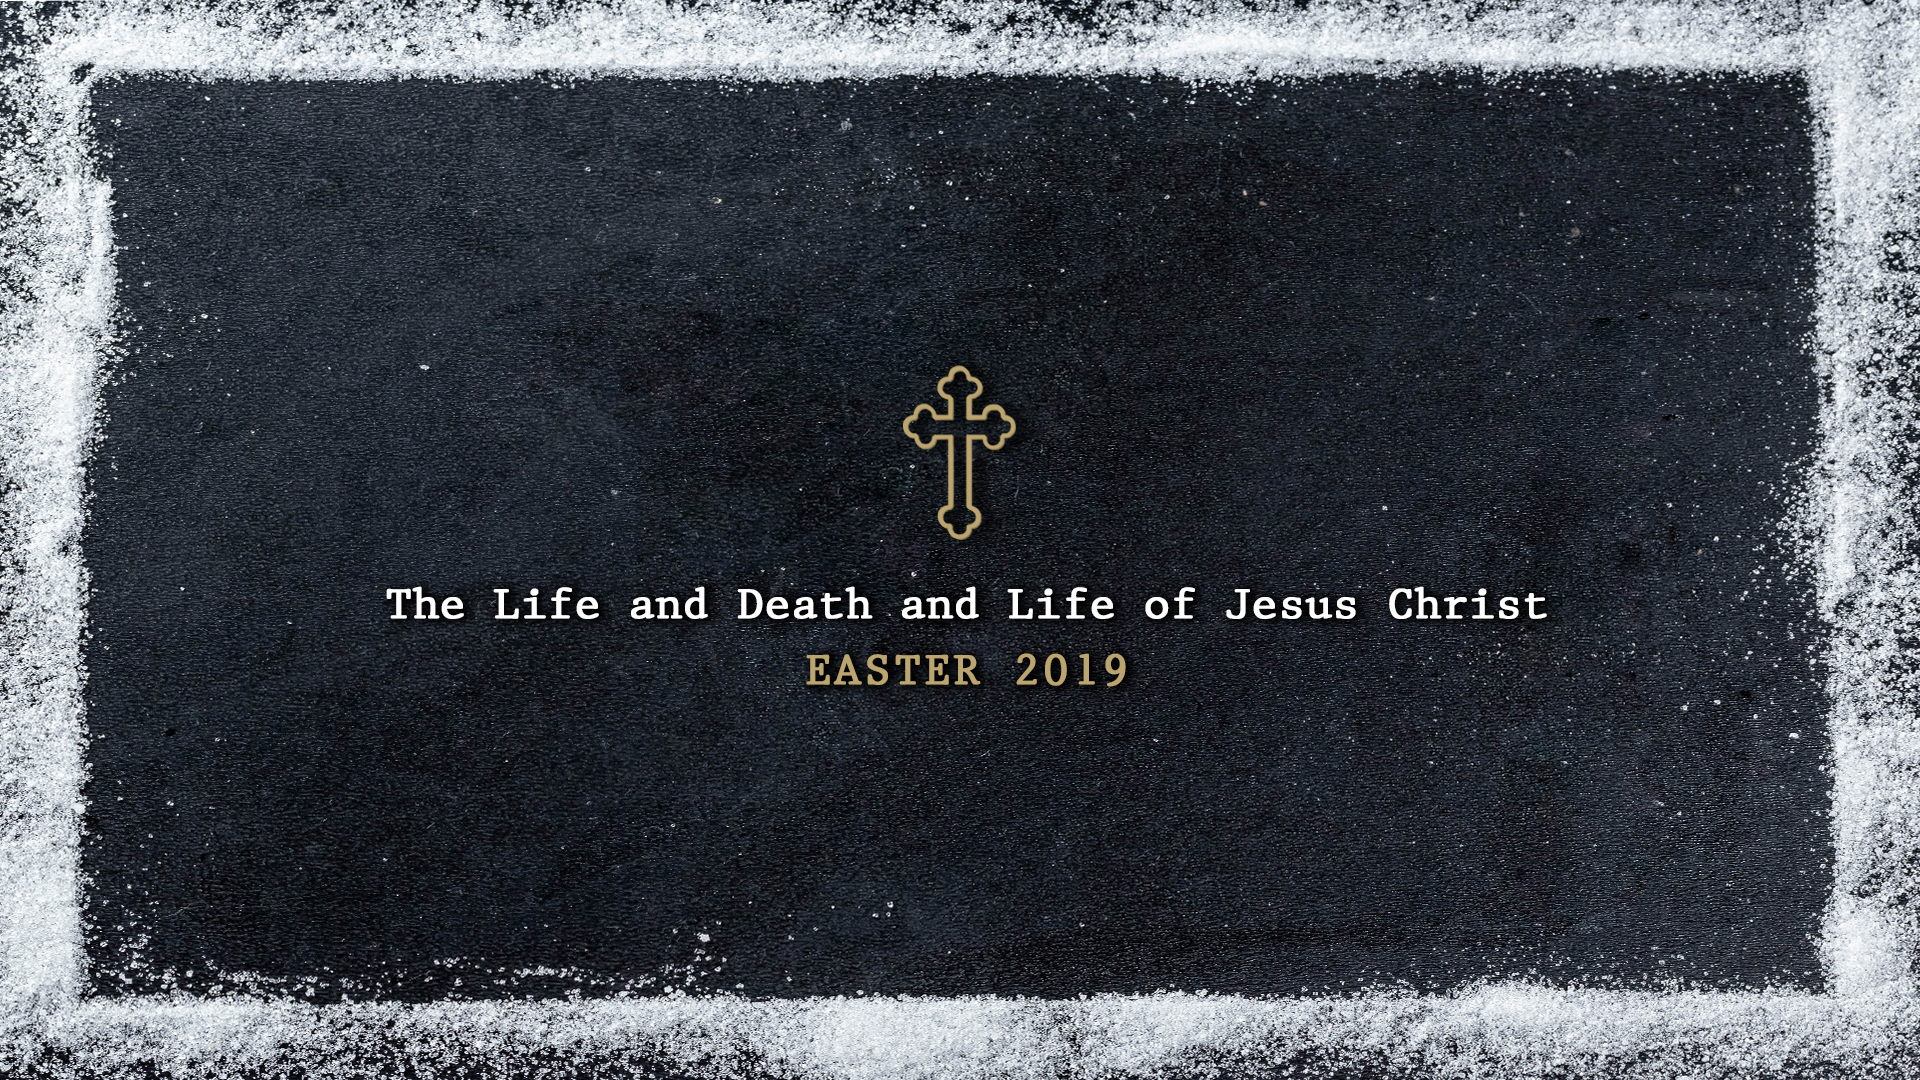 TGC Williamsburg_Easter 2019 v2 WEB.jpg